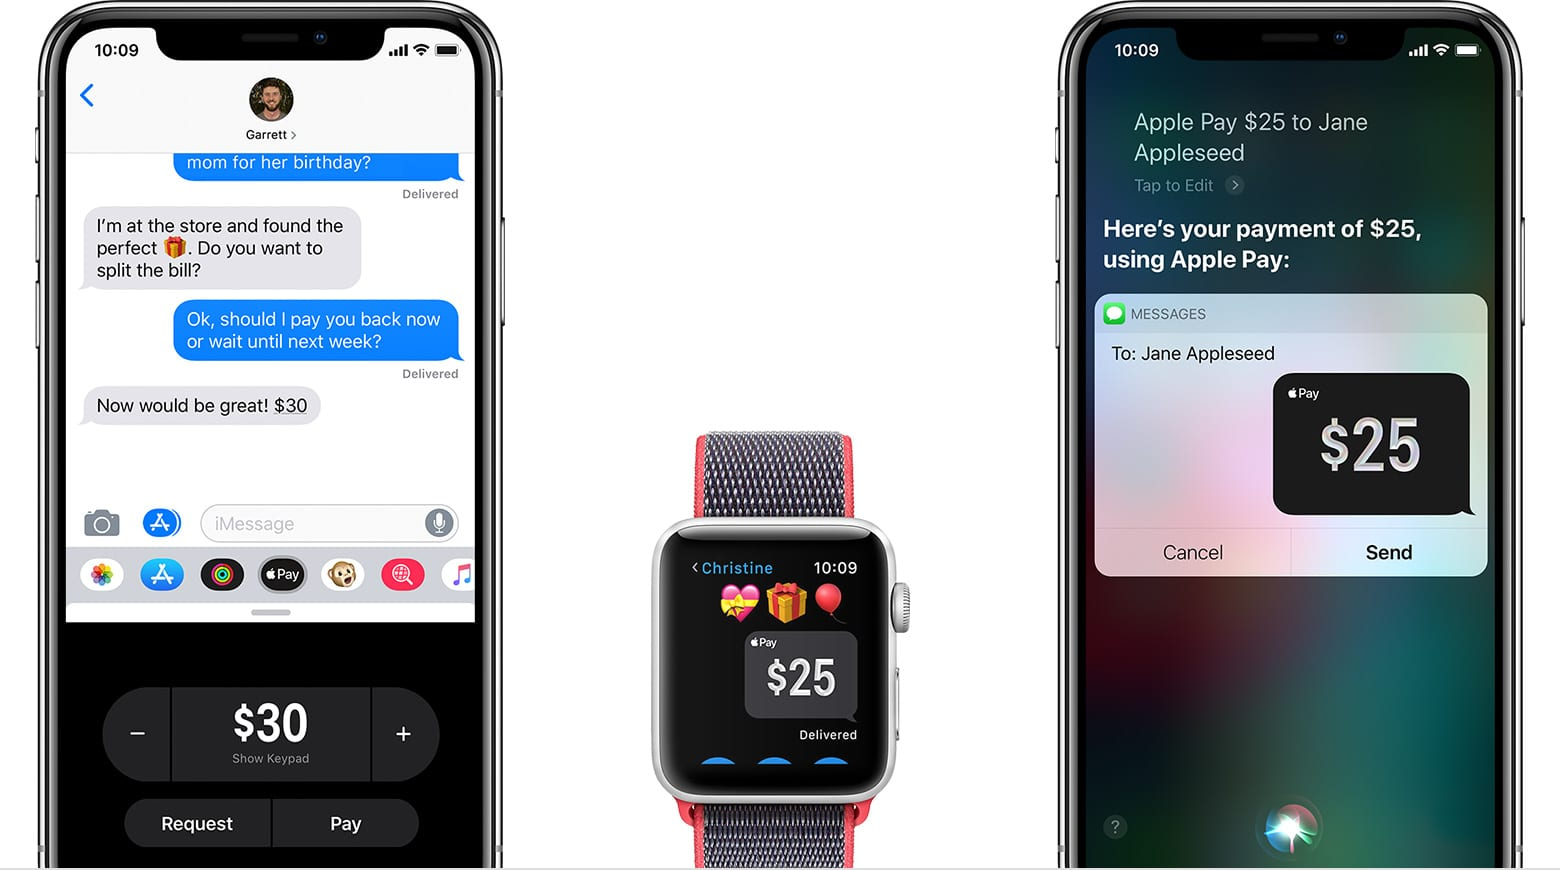 ios12 watchos5 iphone x watch applepay hero - Apple Pay Cash už čoskoro v Európe?